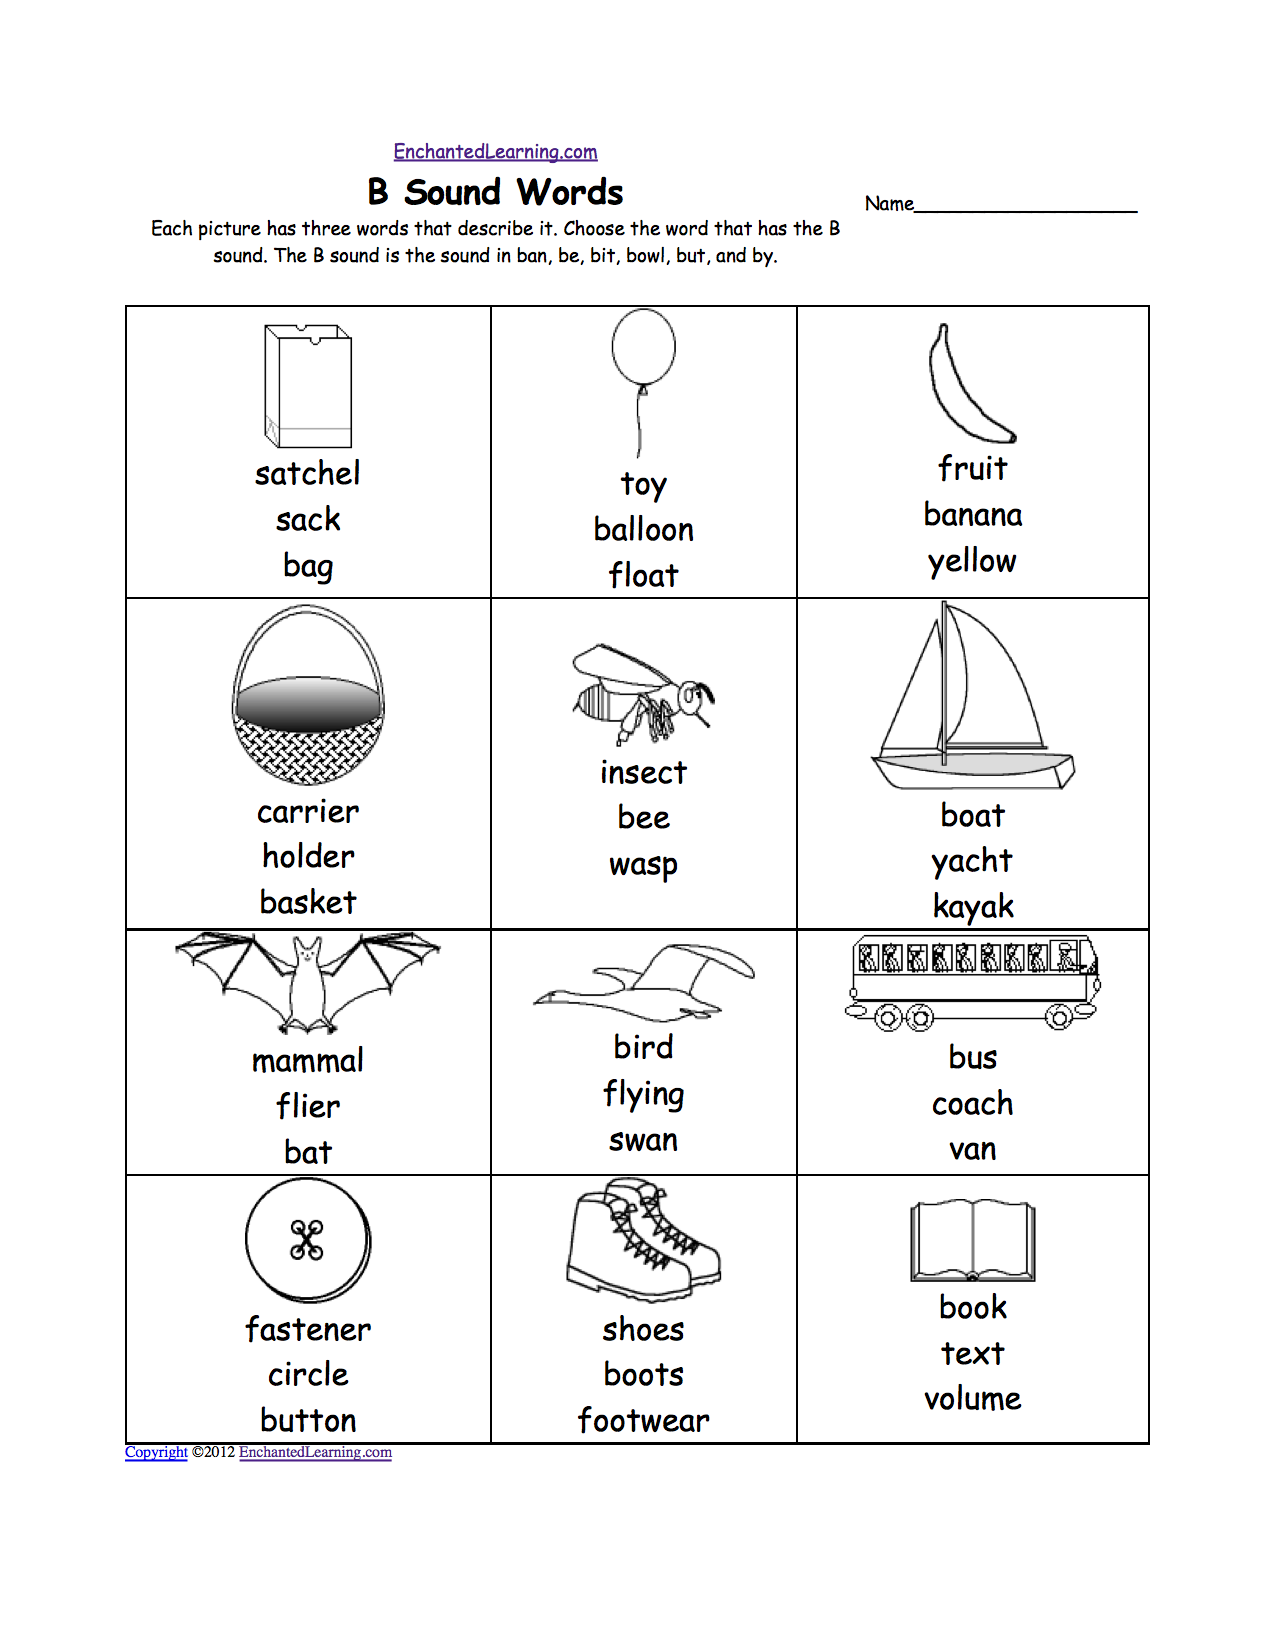 Aldiablosus  Pleasing Phonics Worksheets Multiple Choice Worksheets To Print  With Marvelous Quotbquot Sound Phonics Worksheet Multiple Choice Each Picture Has Three Words That Describe It Choose The Word That Has A Quotbquot Sound The Quotbquot Sound Is The Sound  With Divine Printable English Worksheets Ks Also Year  Spelling Worksheets In Addition Long A Silent E Worksheet And Fractions Grade  Worksheets As Well As Esl Clothing Worksheets Additionally Inverse Trigonometric Functions Problems Worksheets From Enchantedlearningcom With Aldiablosus  Marvelous Phonics Worksheets Multiple Choice Worksheets To Print  With Divine Quotbquot Sound Phonics Worksheet Multiple Choice Each Picture Has Three Words That Describe It Choose The Word That Has A Quotbquot Sound The Quotbquot Sound Is The Sound  And Pleasing Printable English Worksheets Ks Also Year  Spelling Worksheets In Addition Long A Silent E Worksheet From Enchantedlearningcom